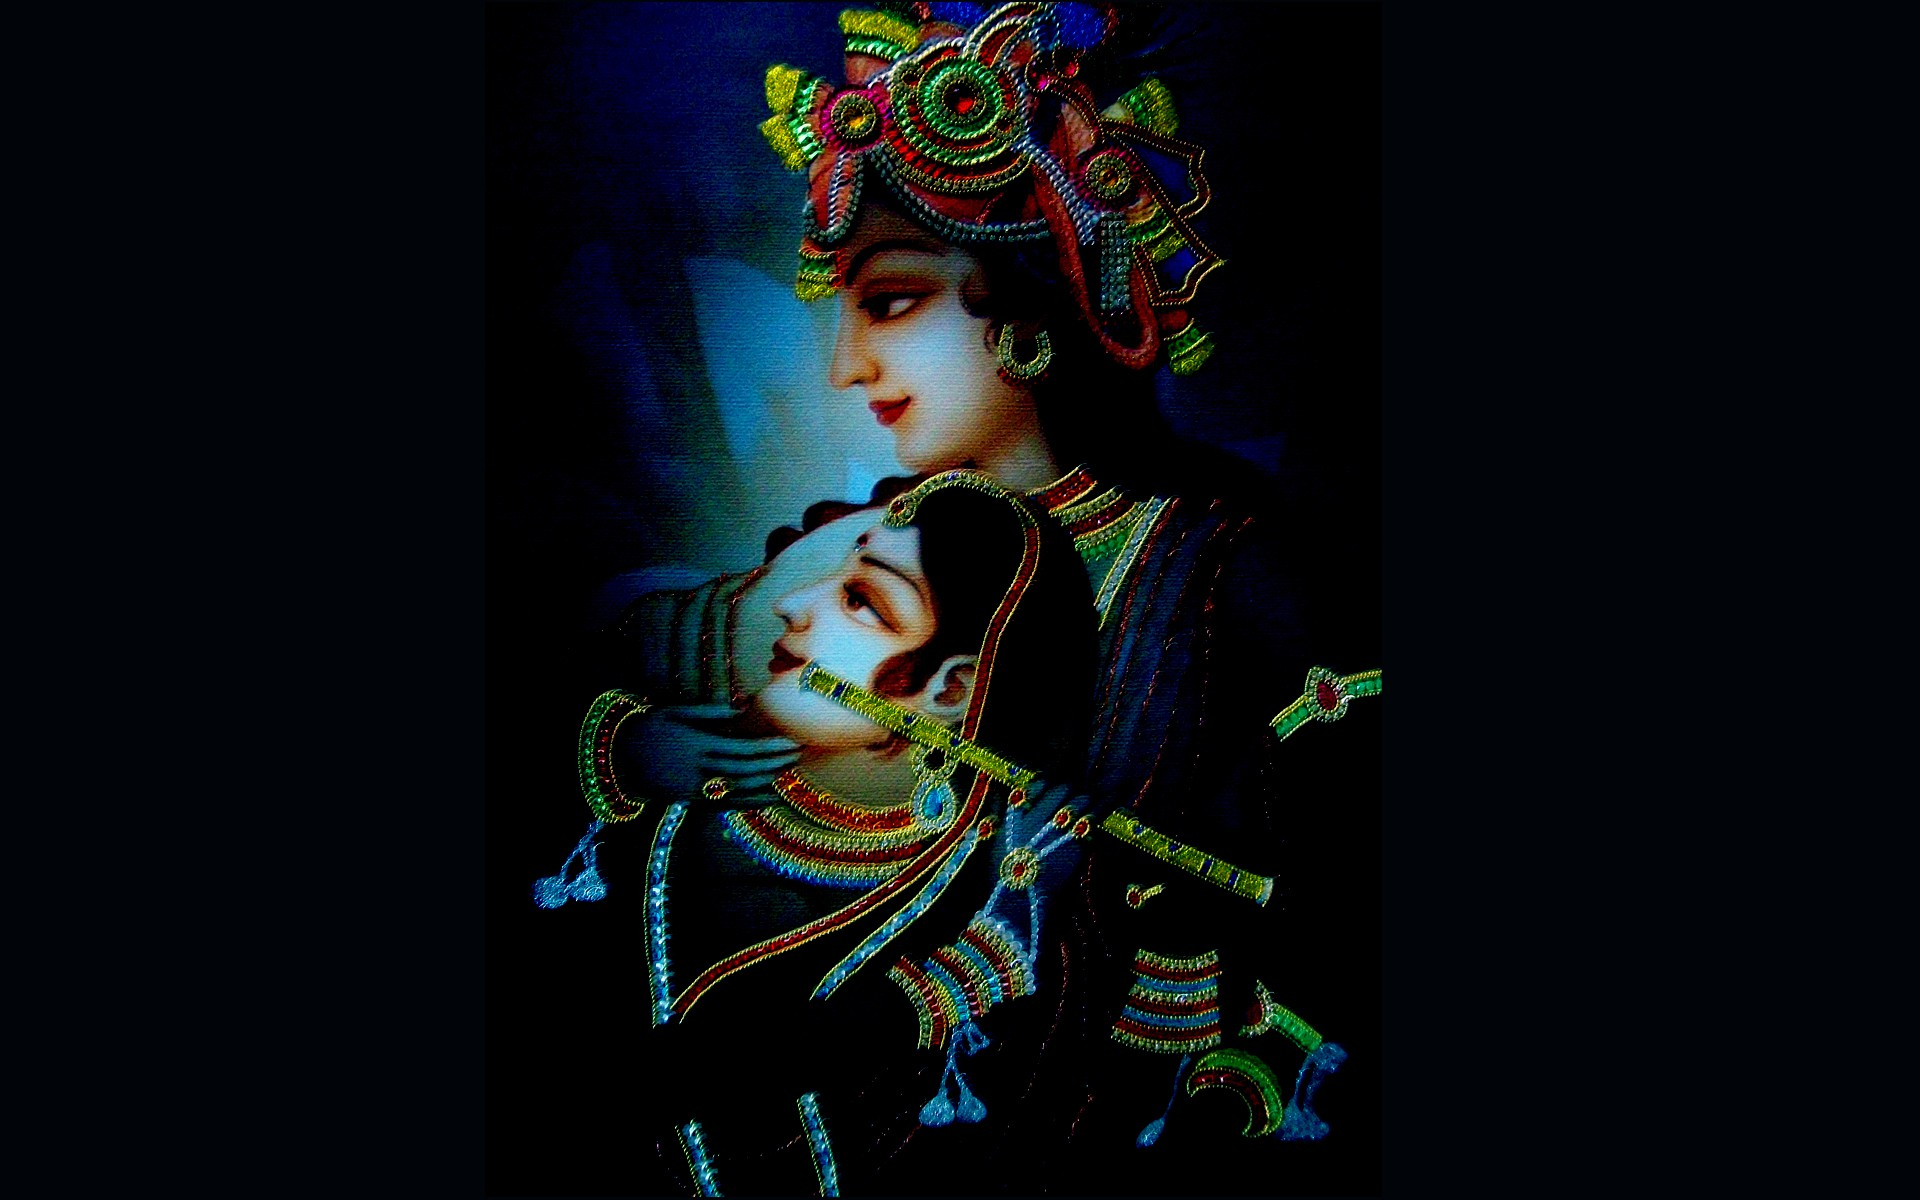 Radha-Krishna-Ornaments-Dark - Wallpaper and Images Collection